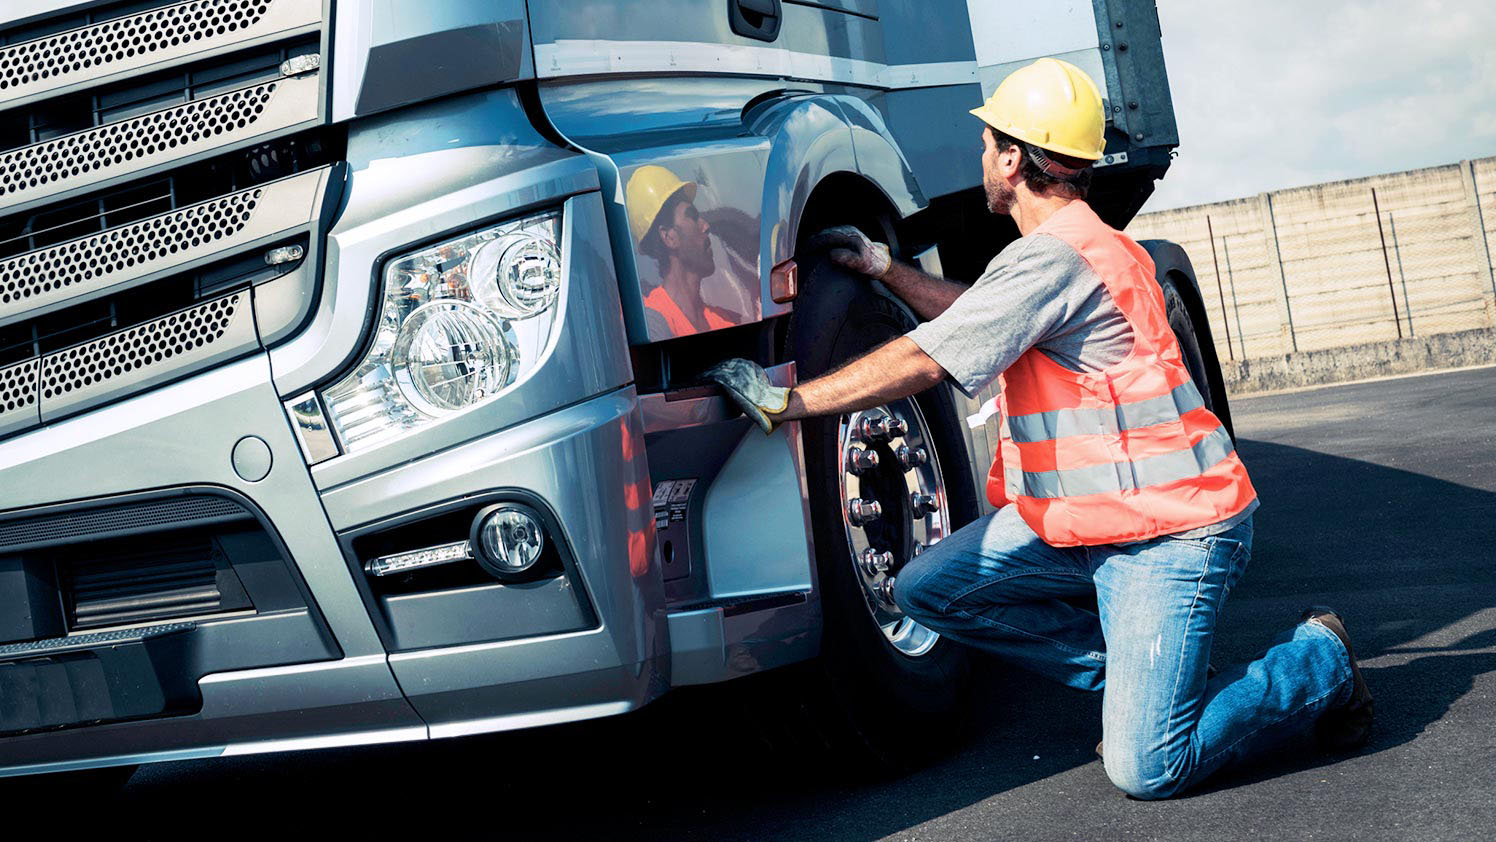 Man kneeling next to a truck checking its tire